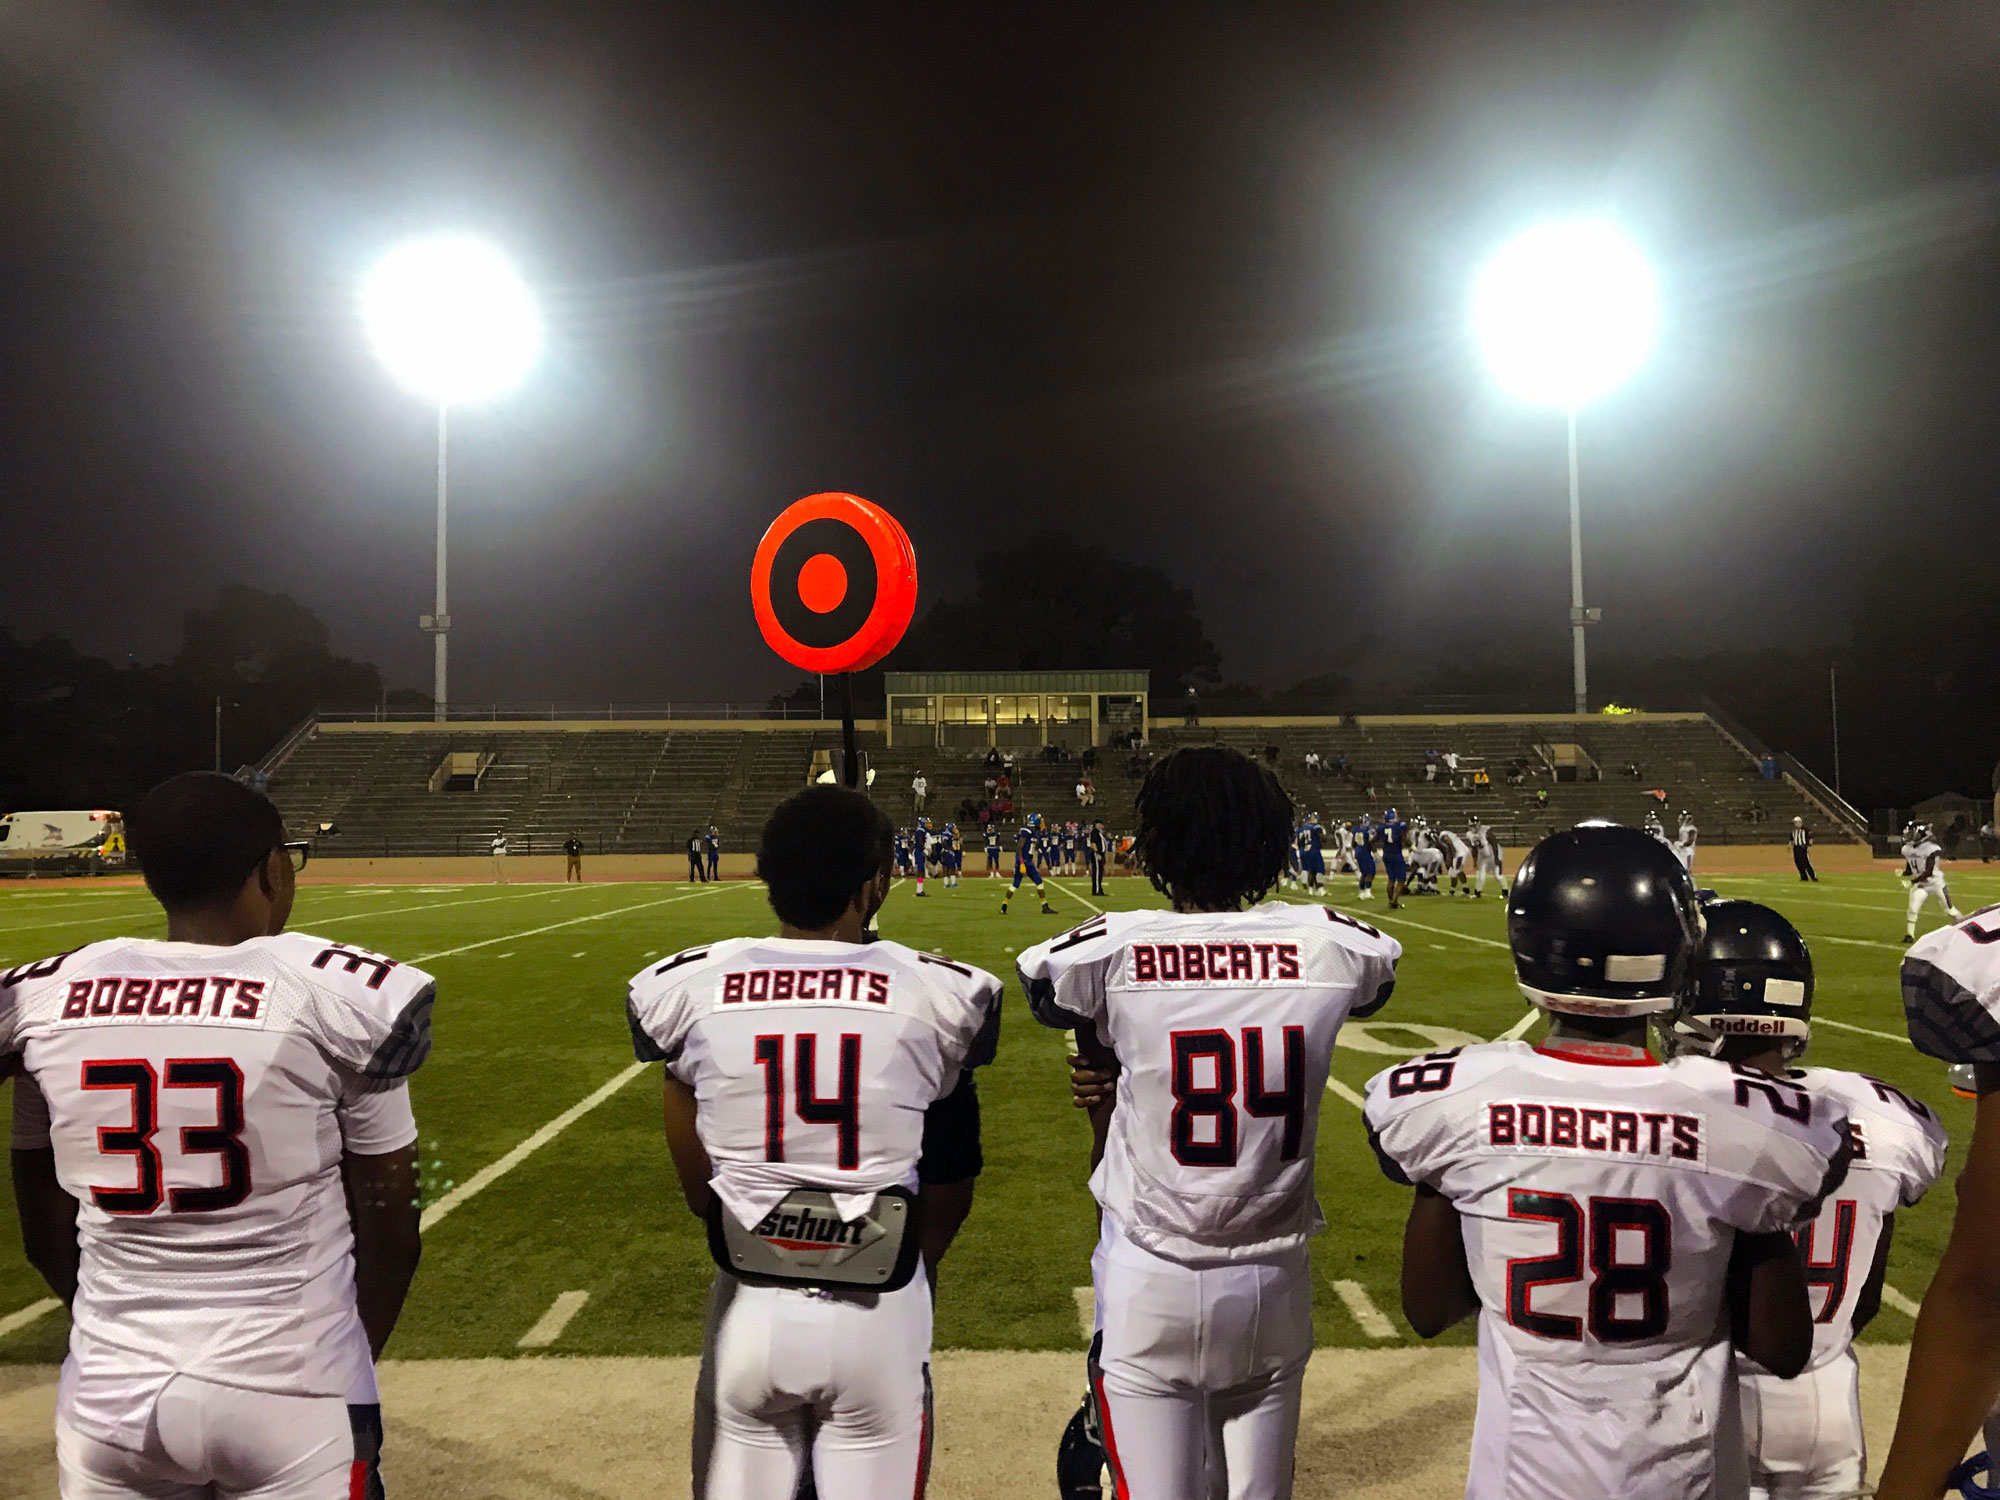 High School Football Makes A Comeback In New Orleans